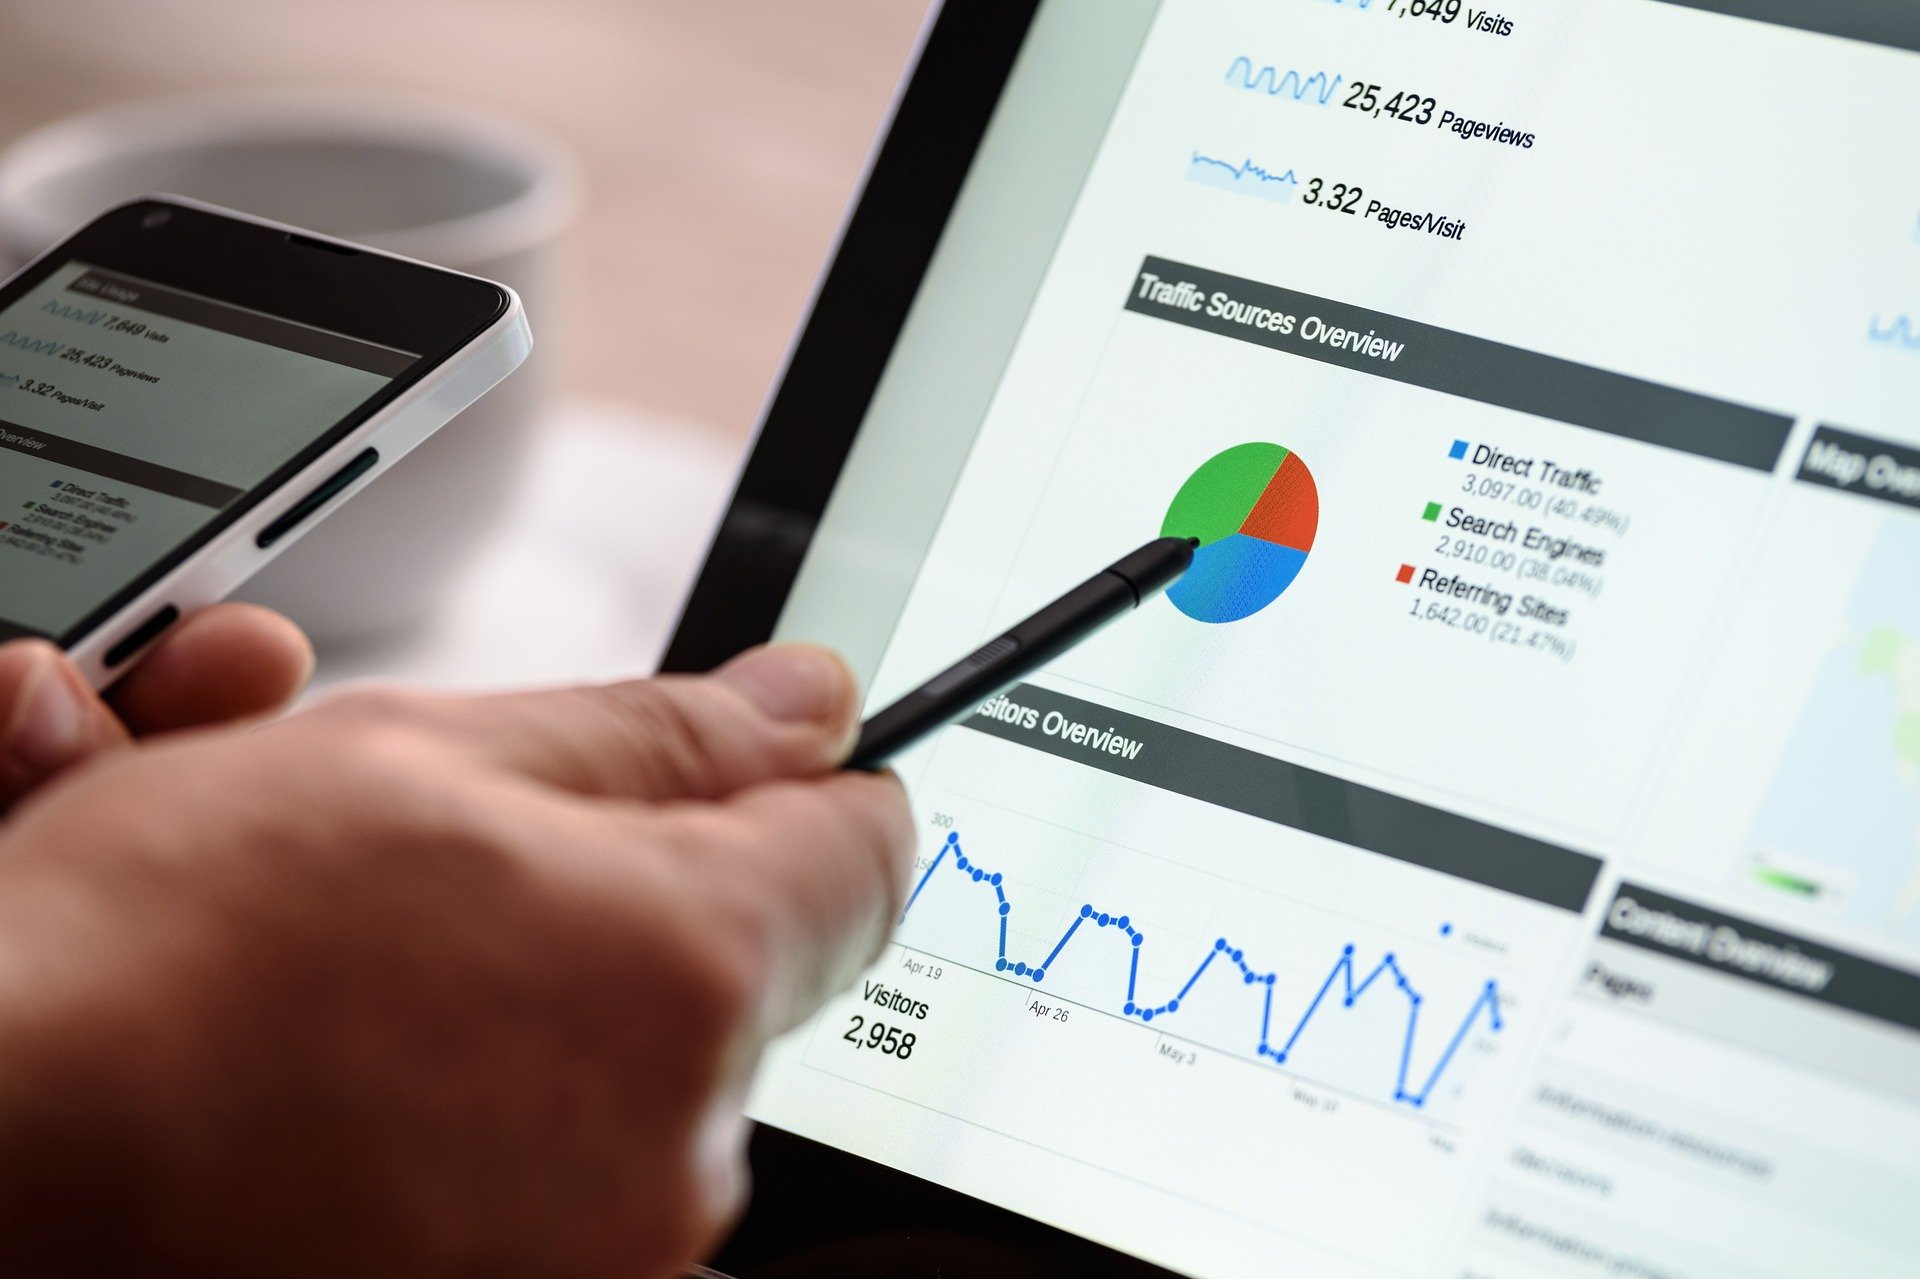 I will give you a complete SEO report on your website